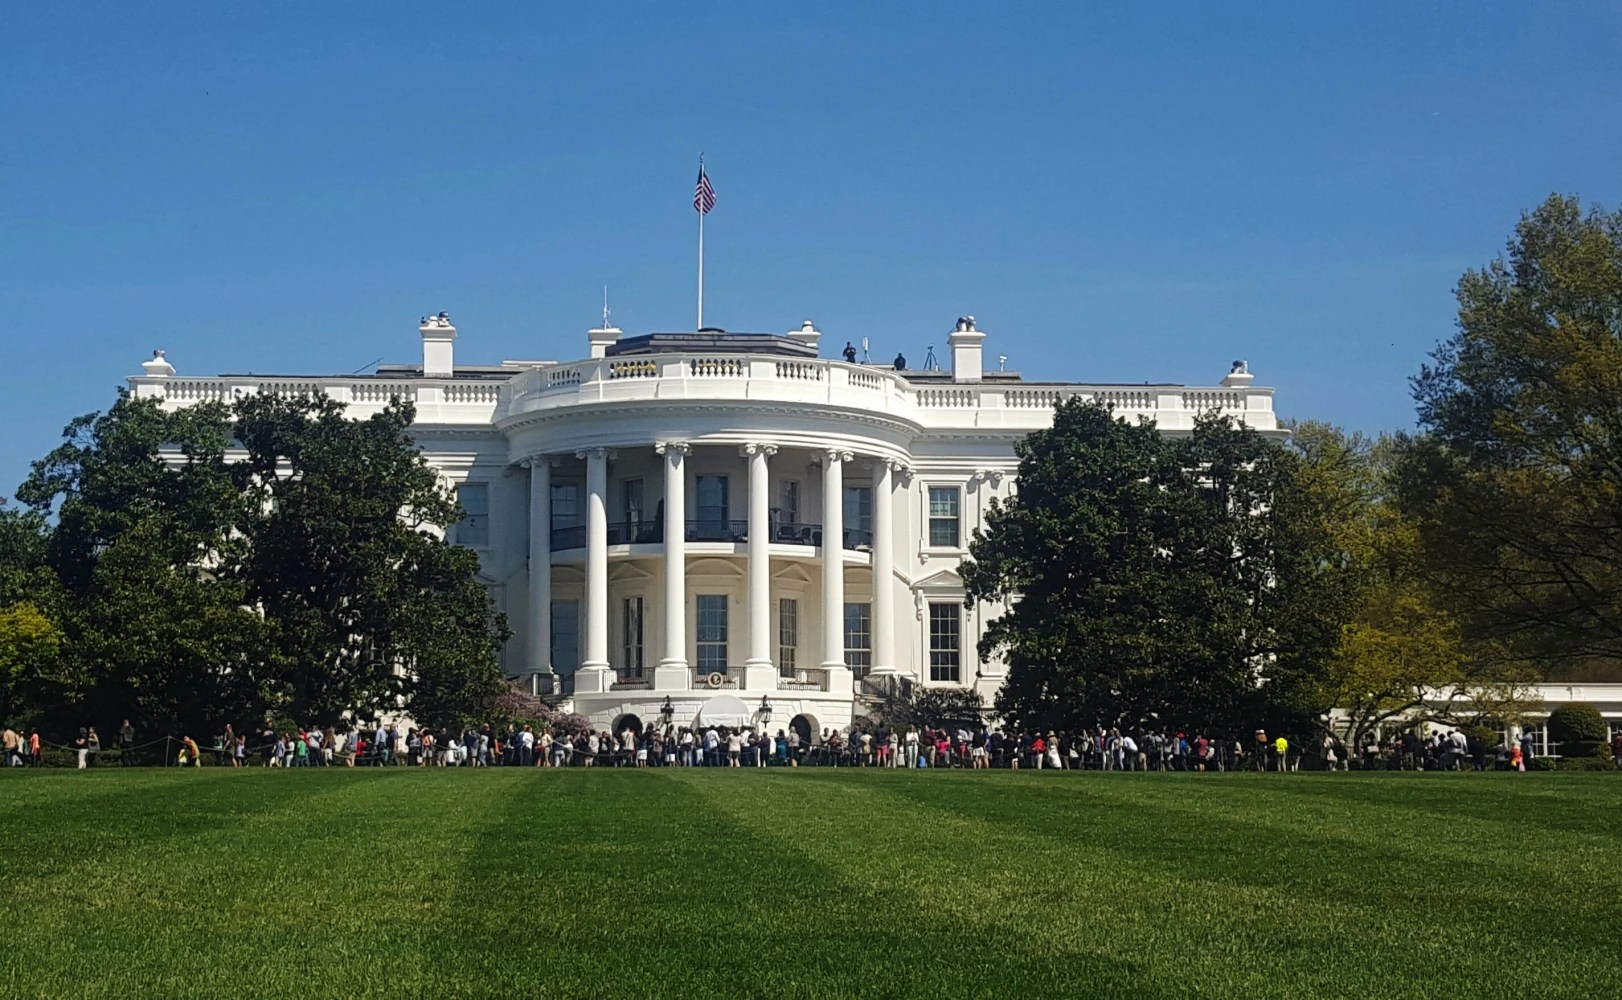 Man detained after driving suspicious car near White House